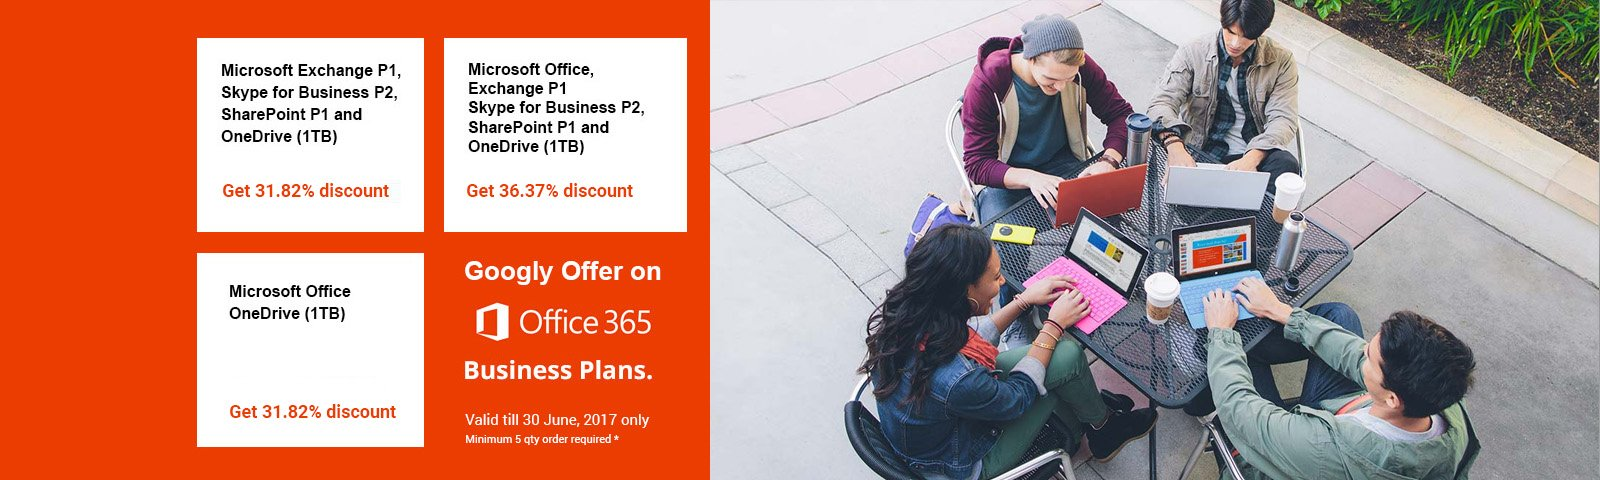 Microsoft Offer365